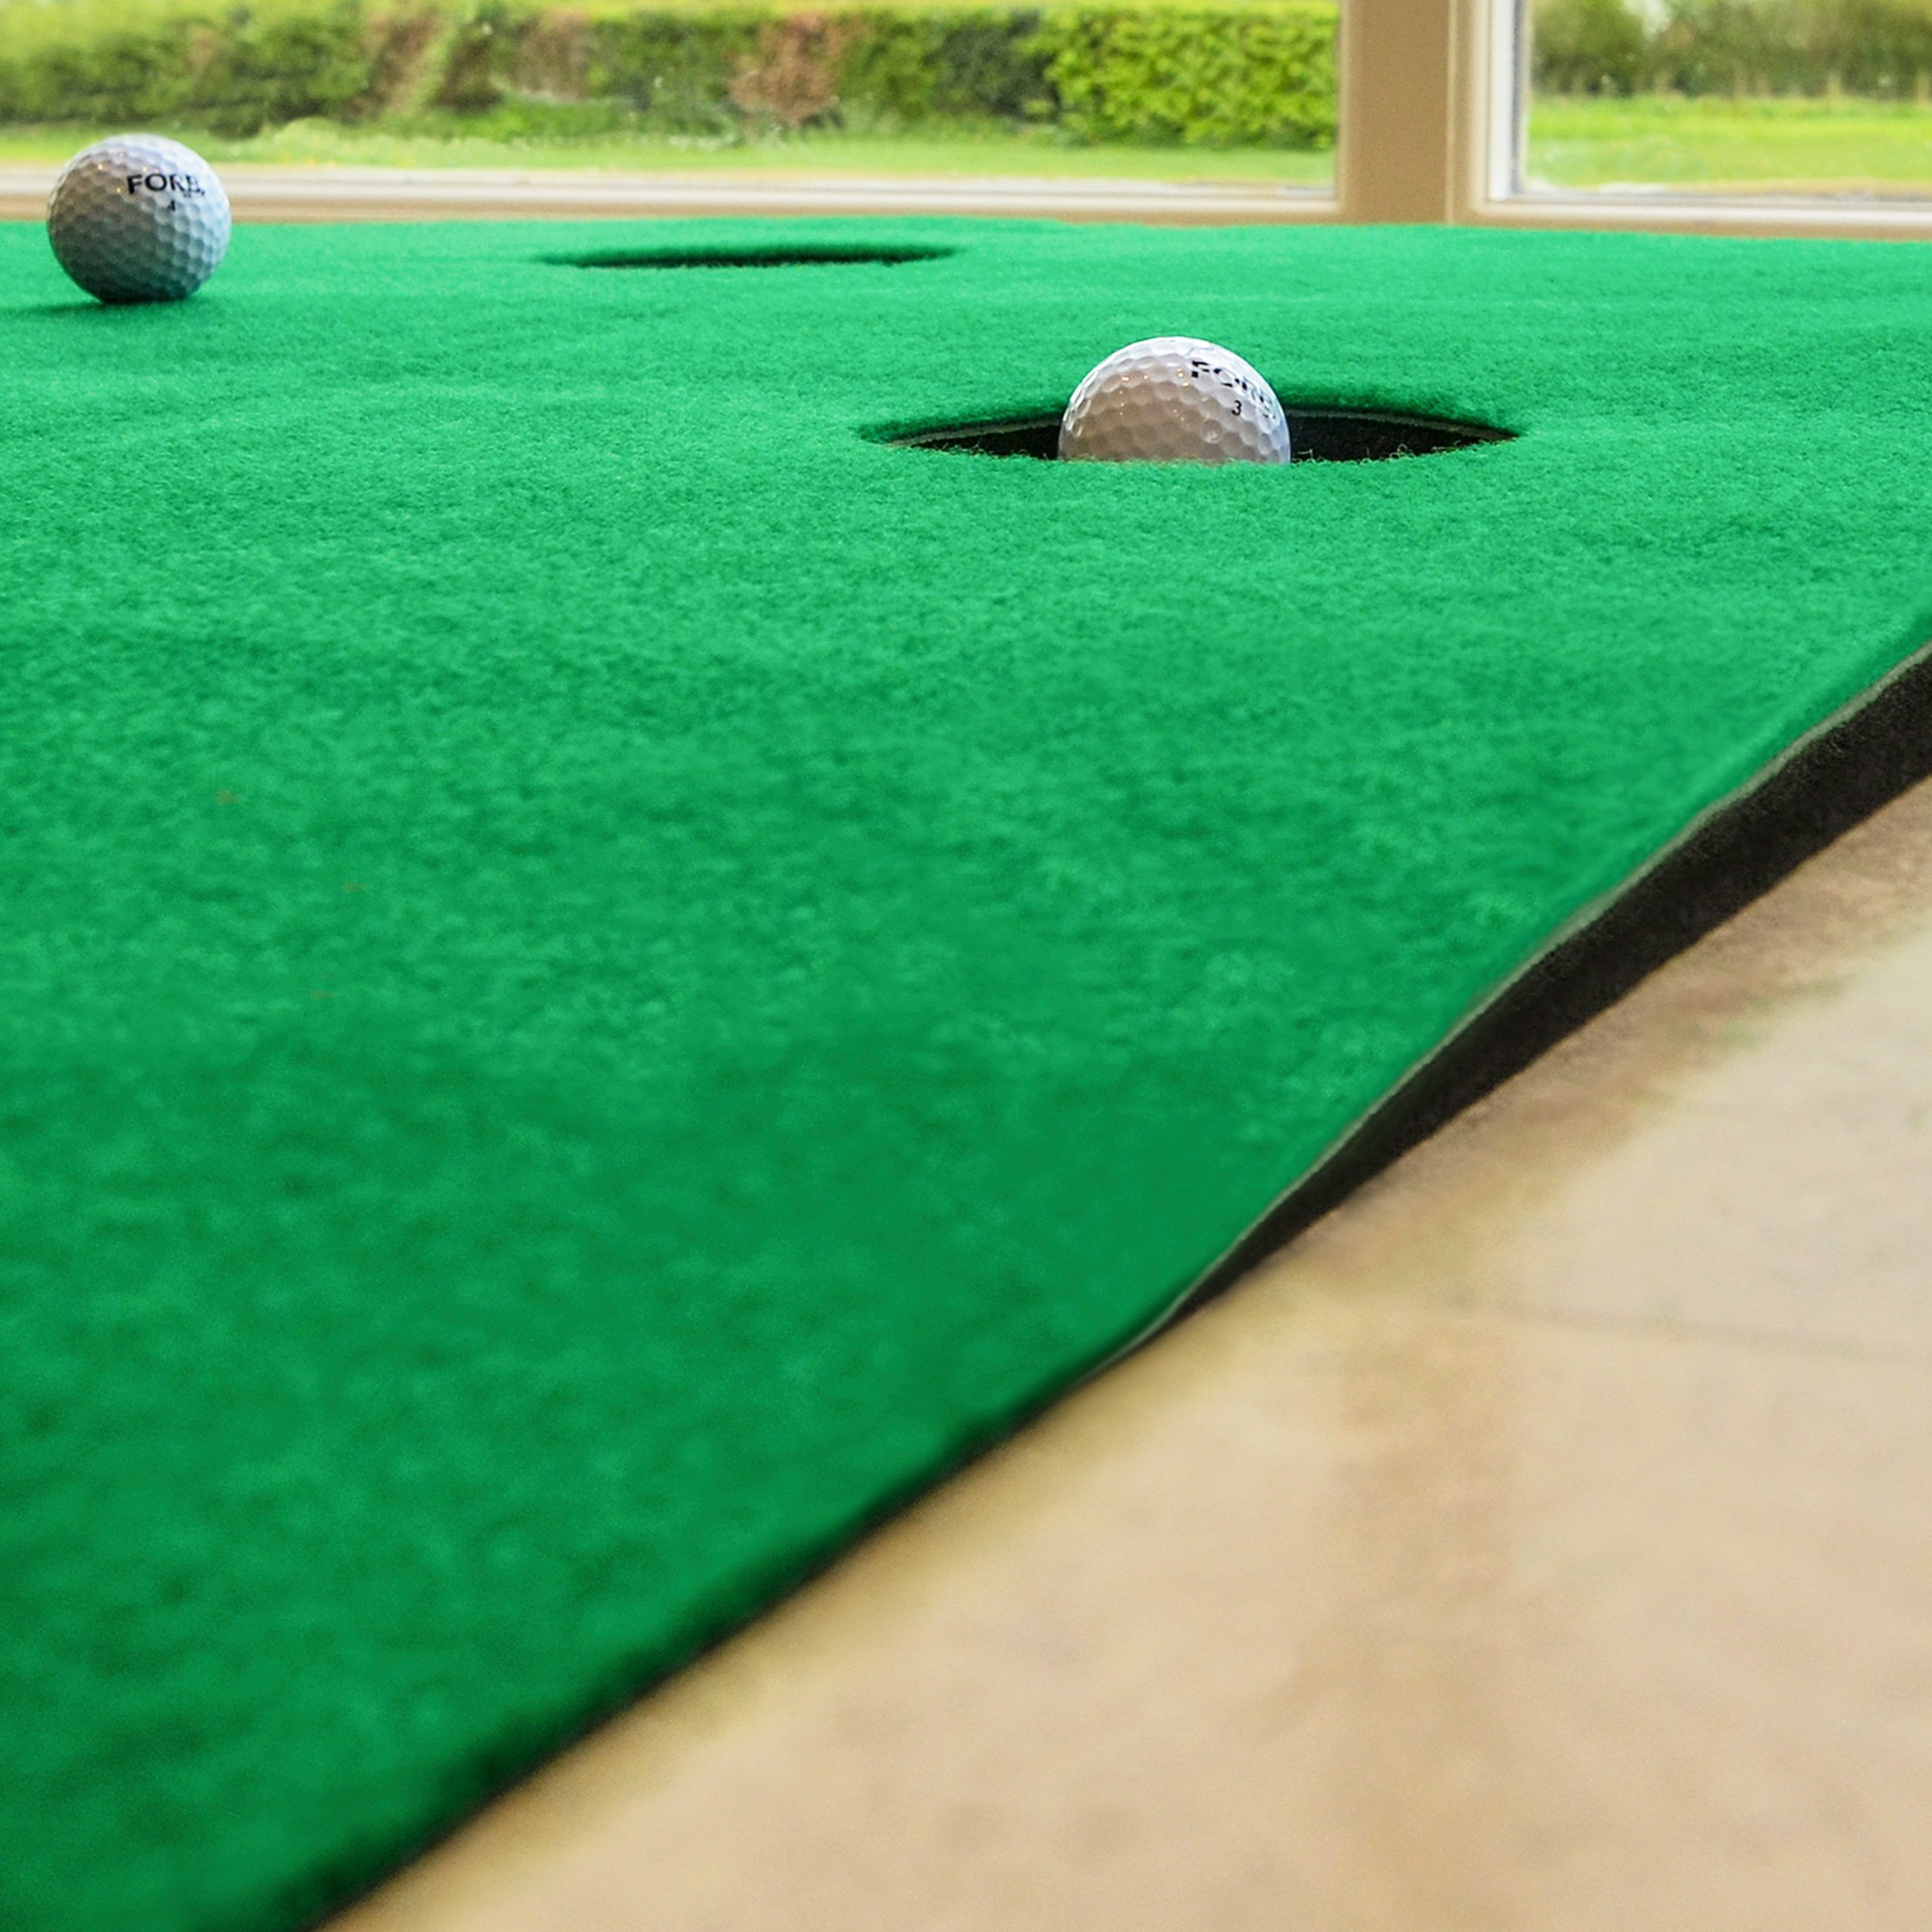 FORB Home Golf Putting Mat 10ft Long - Conquer The Green In Your Own Home! [Net World Sports] by FORB (Image #8)